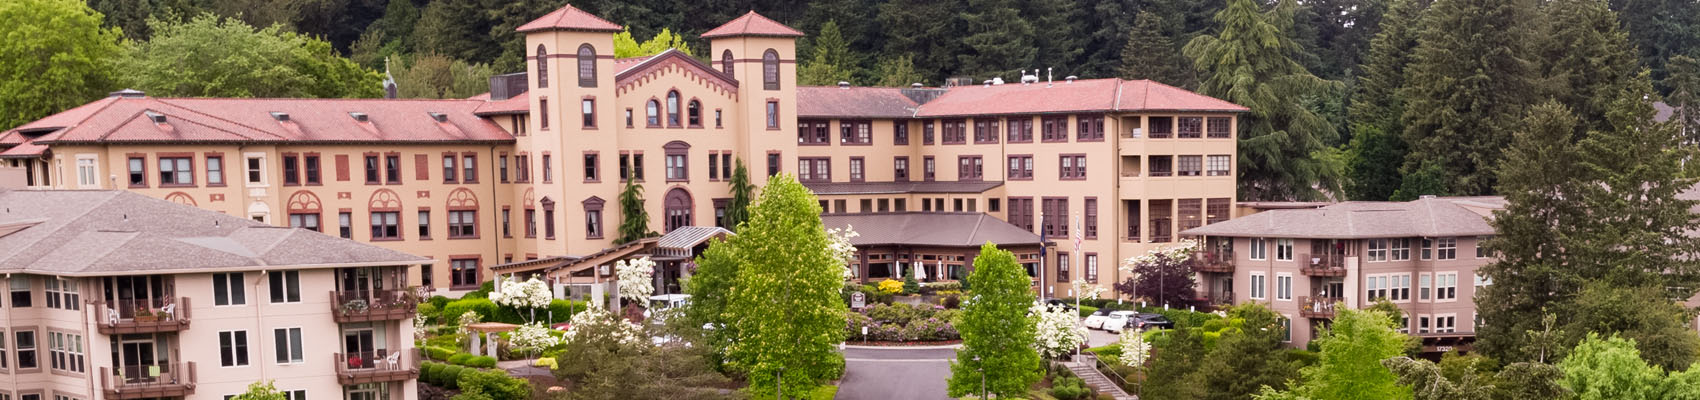 Directions Retirement Community in Lake Oswego Mary s Woods